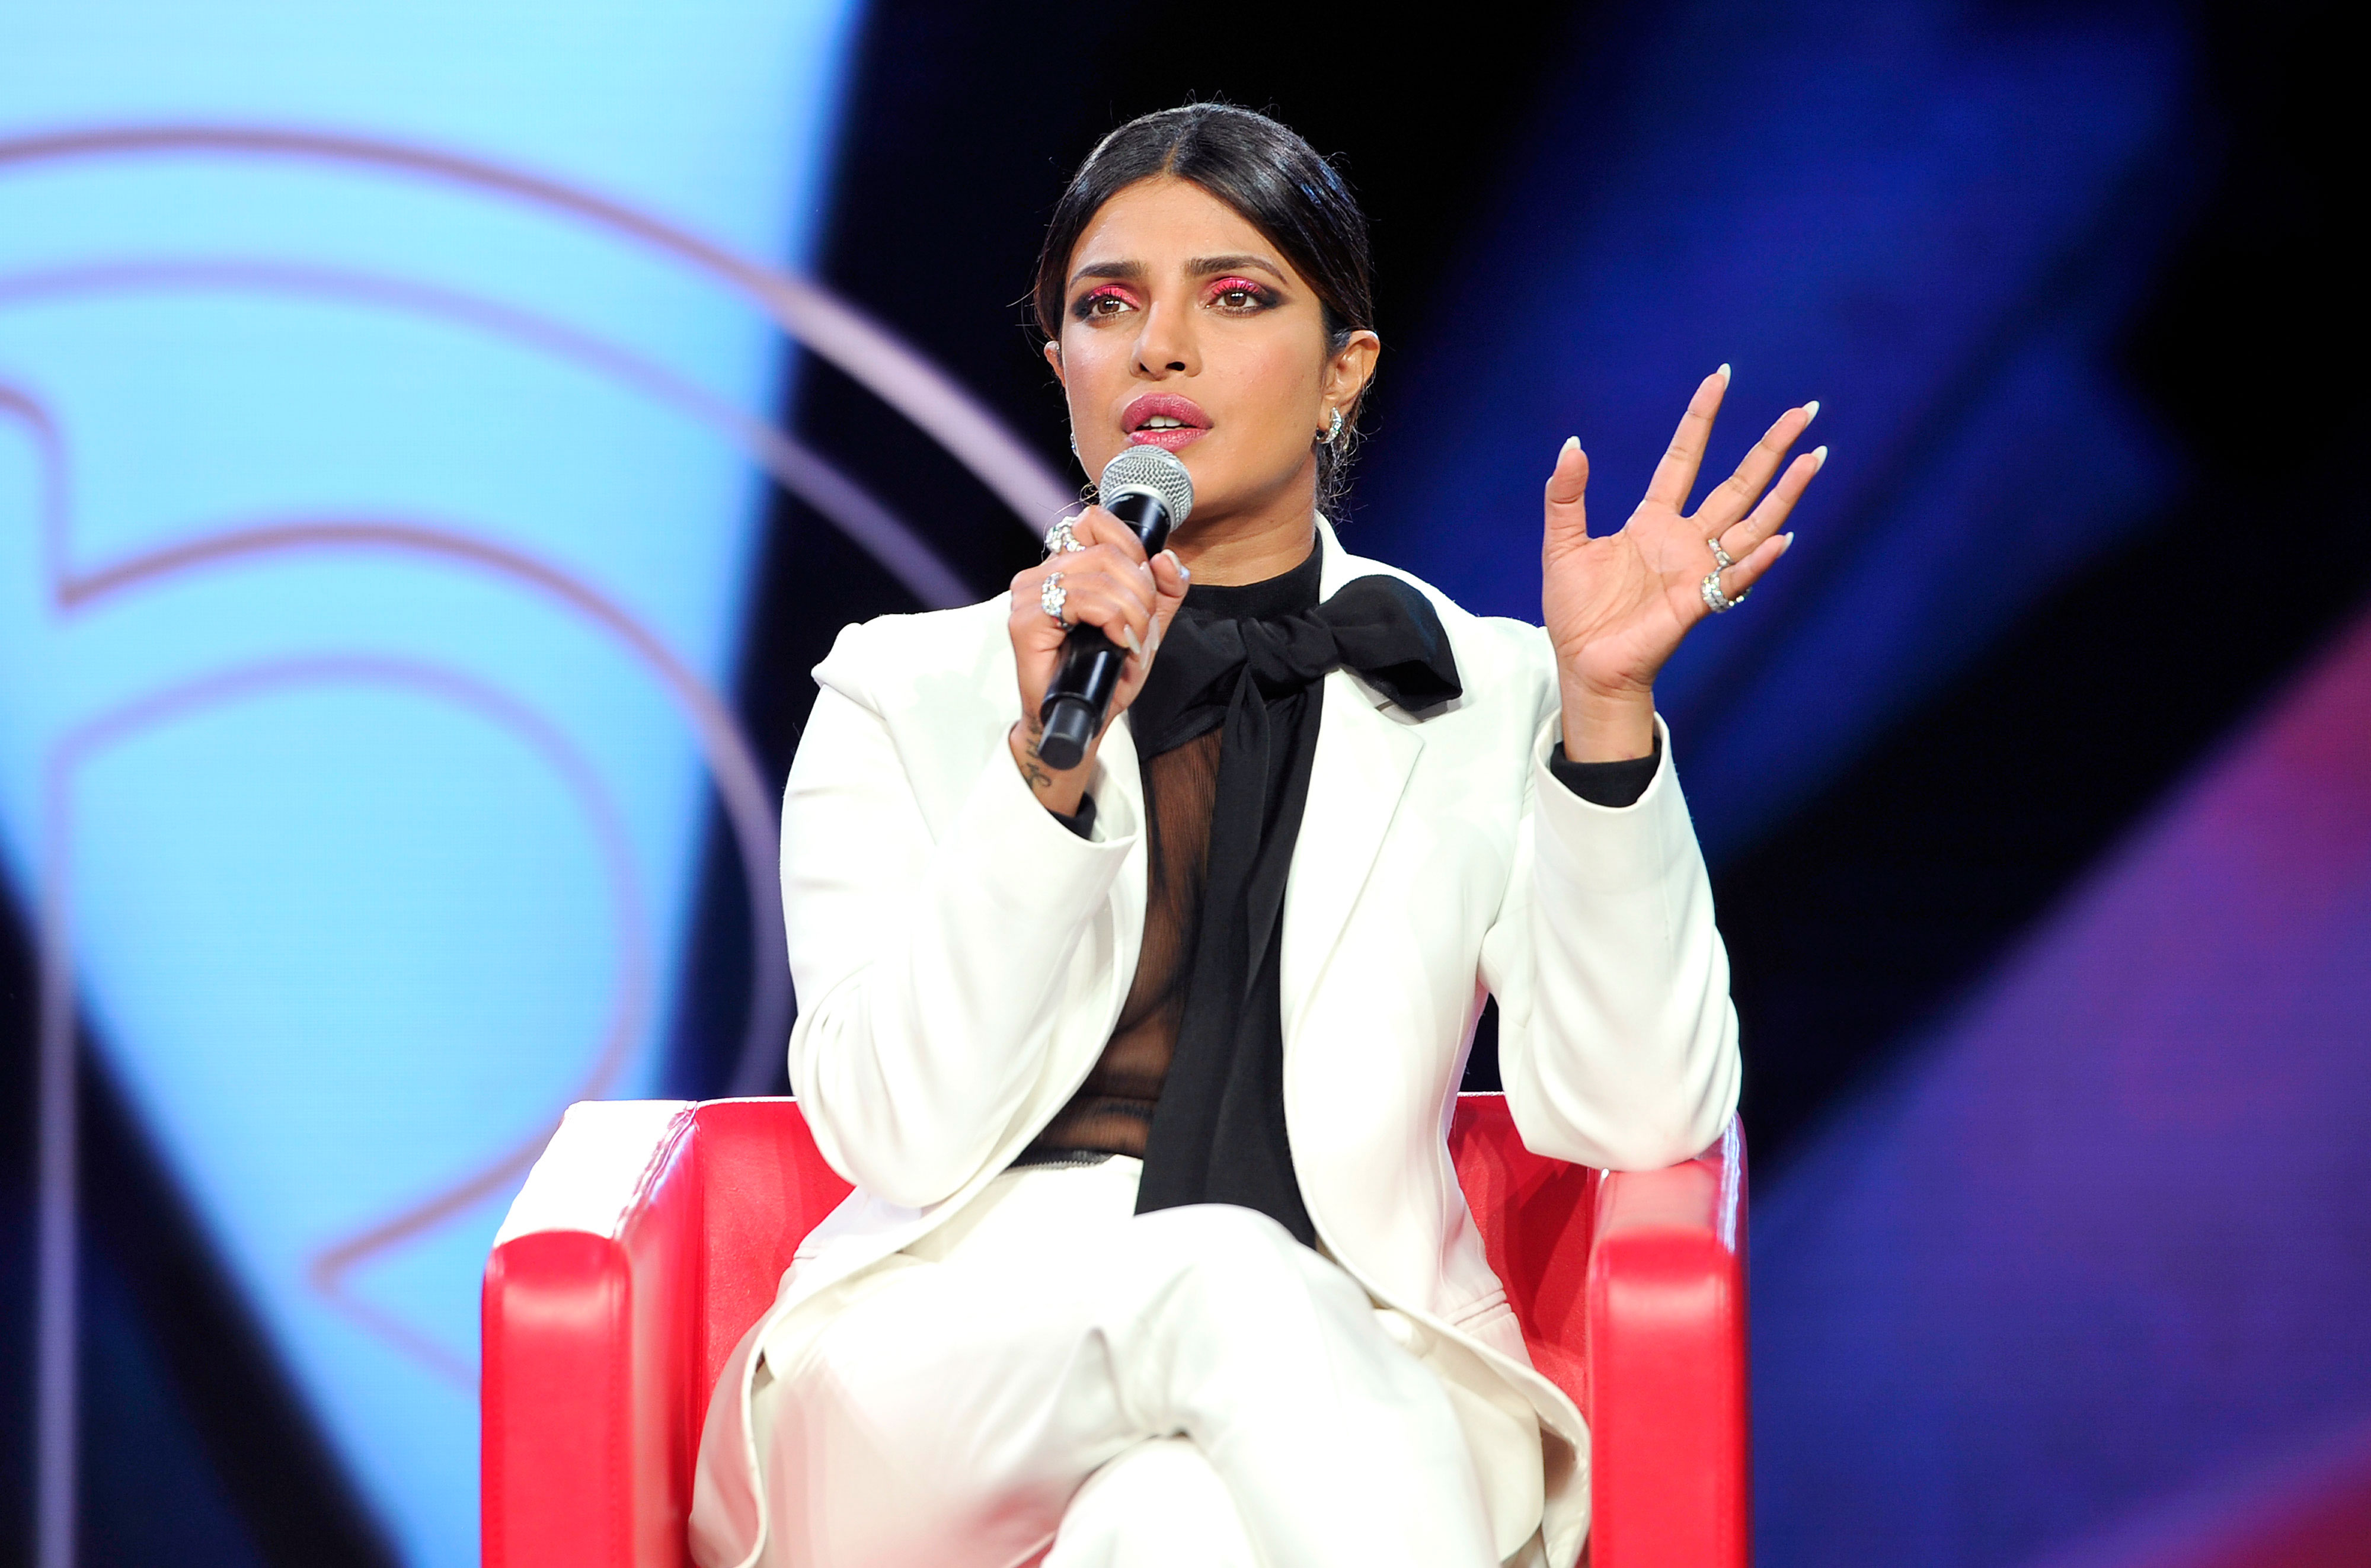 Priyanka Chopra confronted by a woman calling her a hypocrite. The actress said she's patriotic